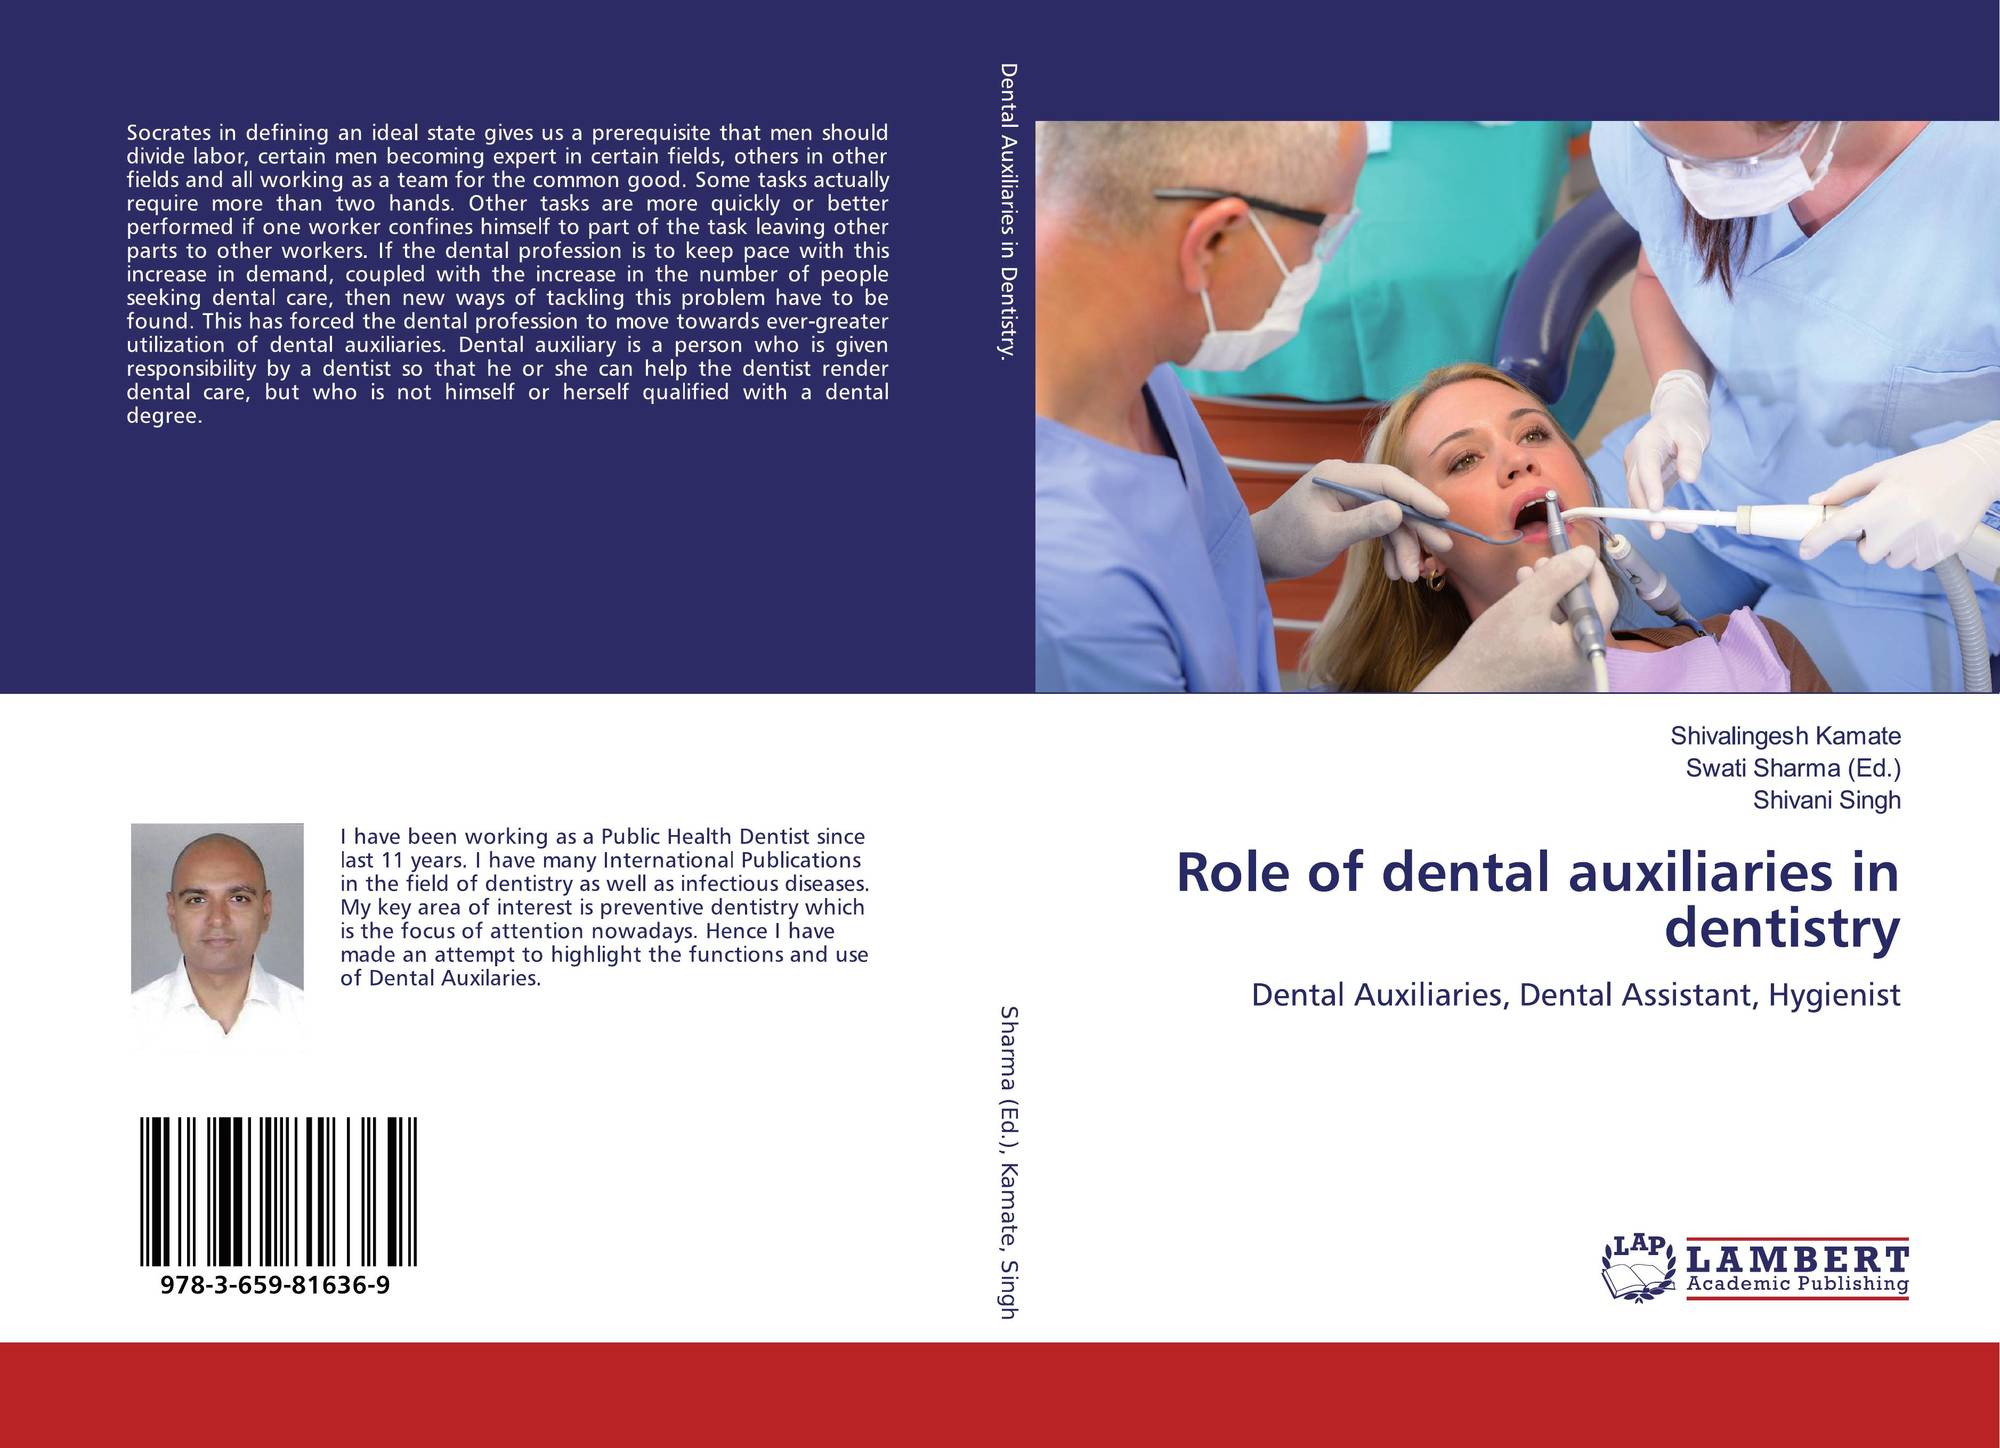 Role of dental auxiliaries in dentistry, 978-3-659-81636-9